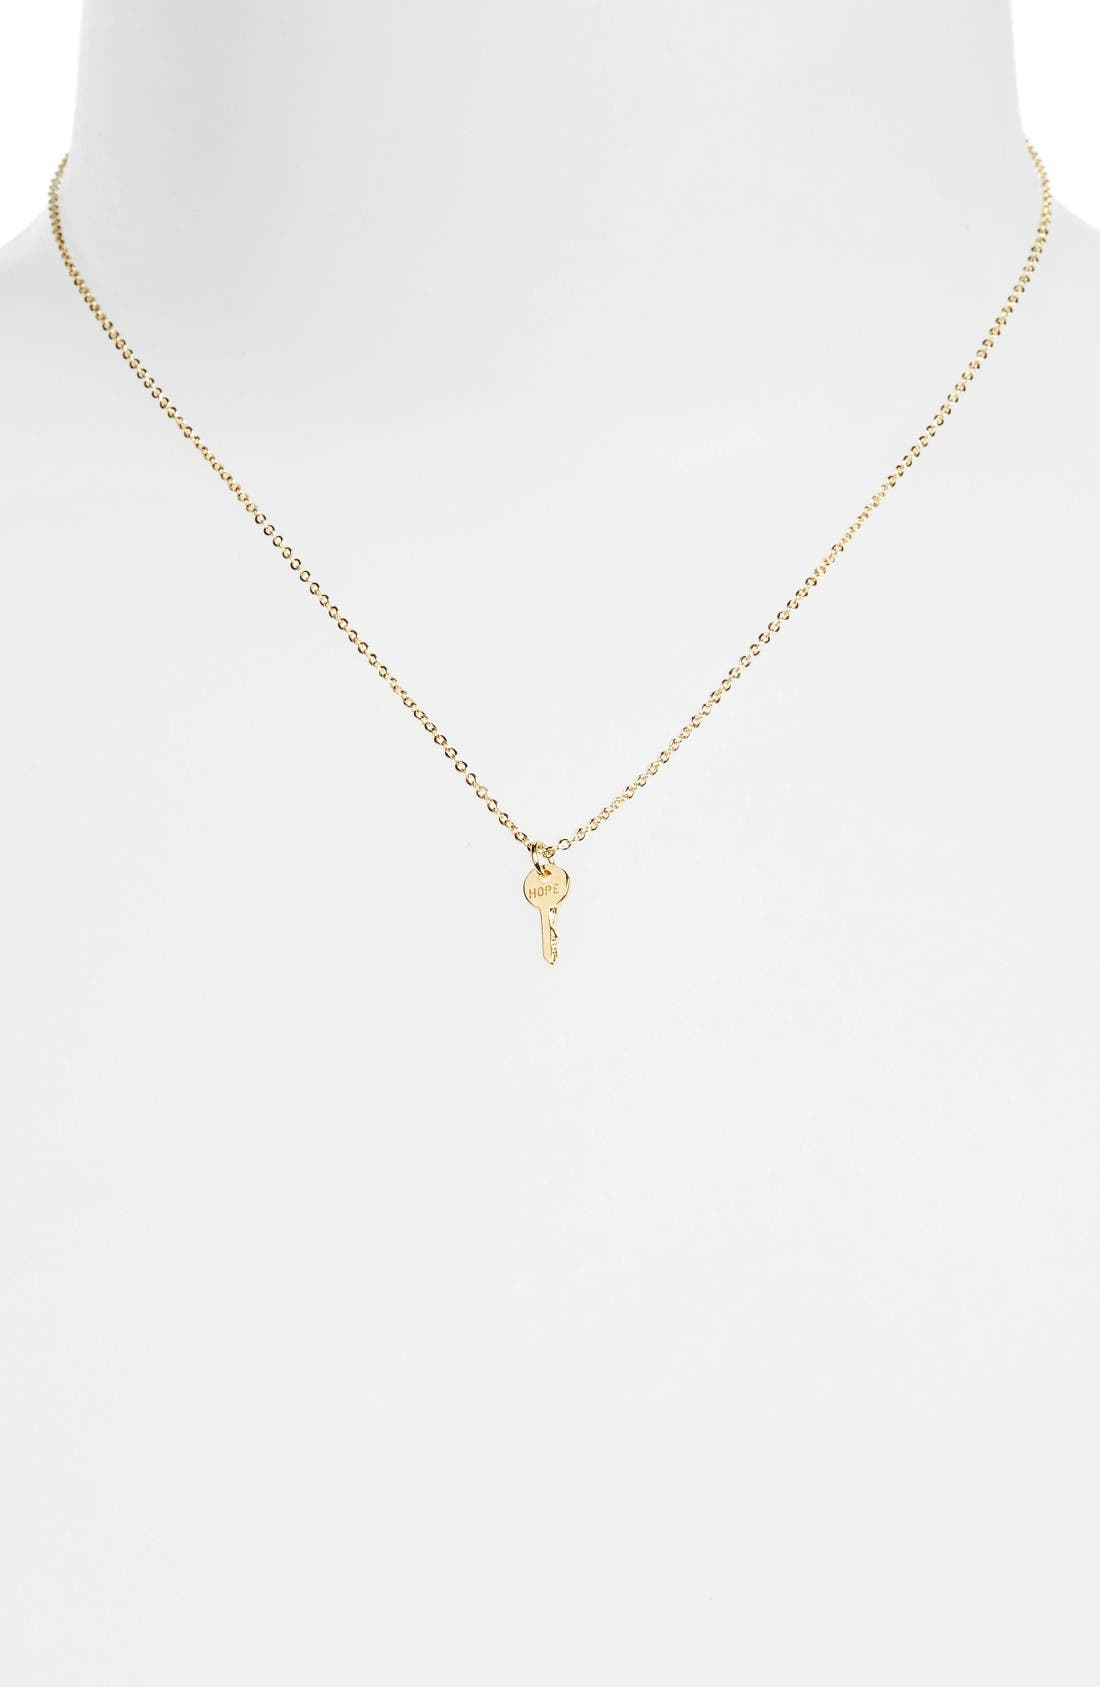 The Giving Keys Hope Mini Key Necklace